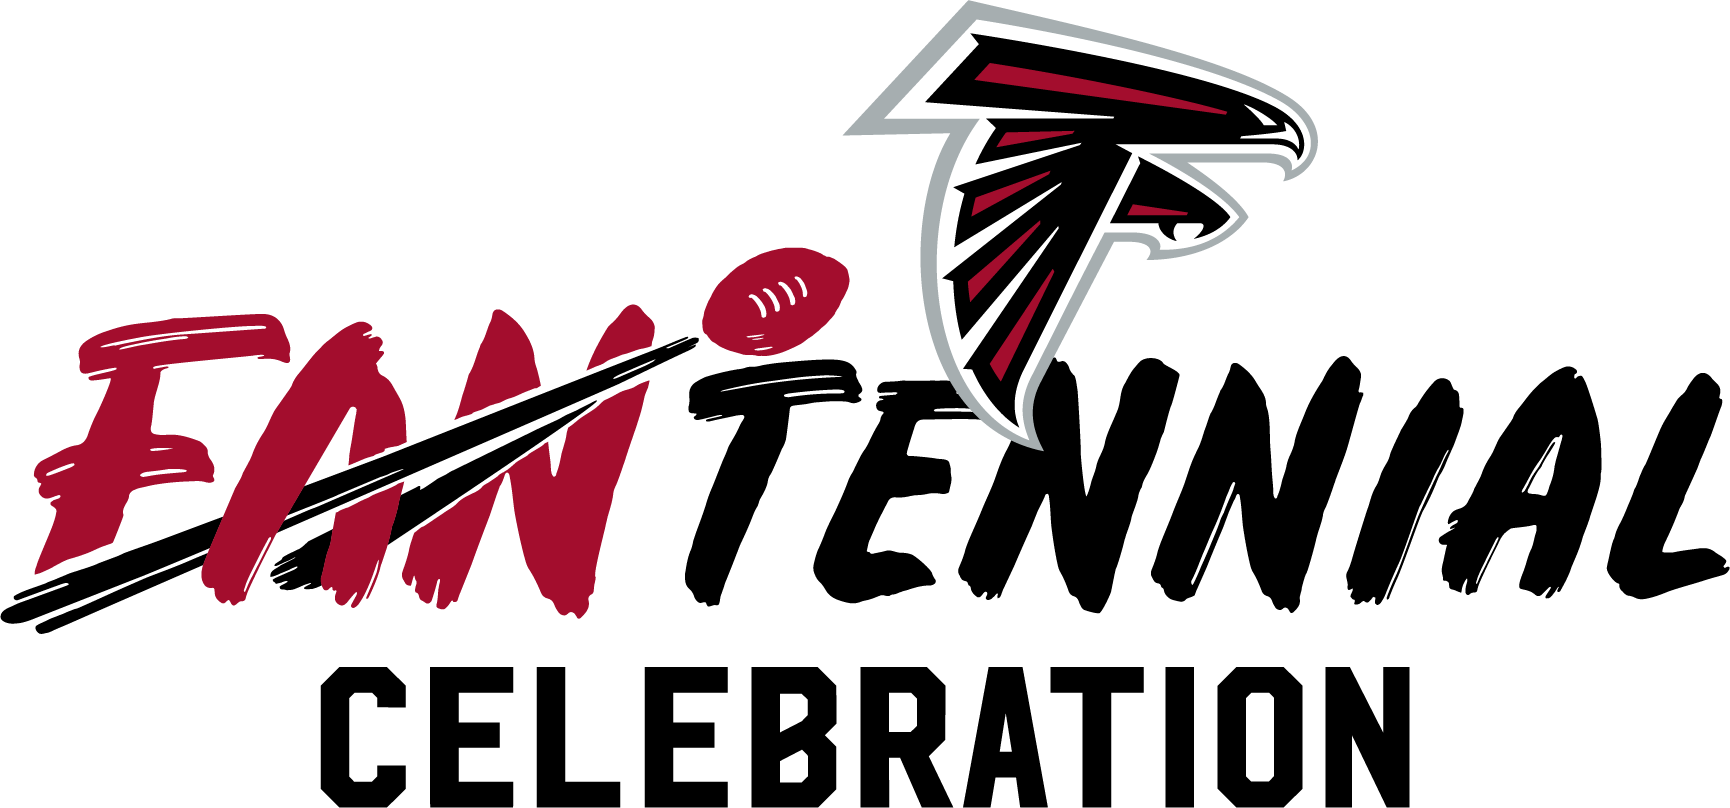 Atlanta Falcons Fantennial Celebration